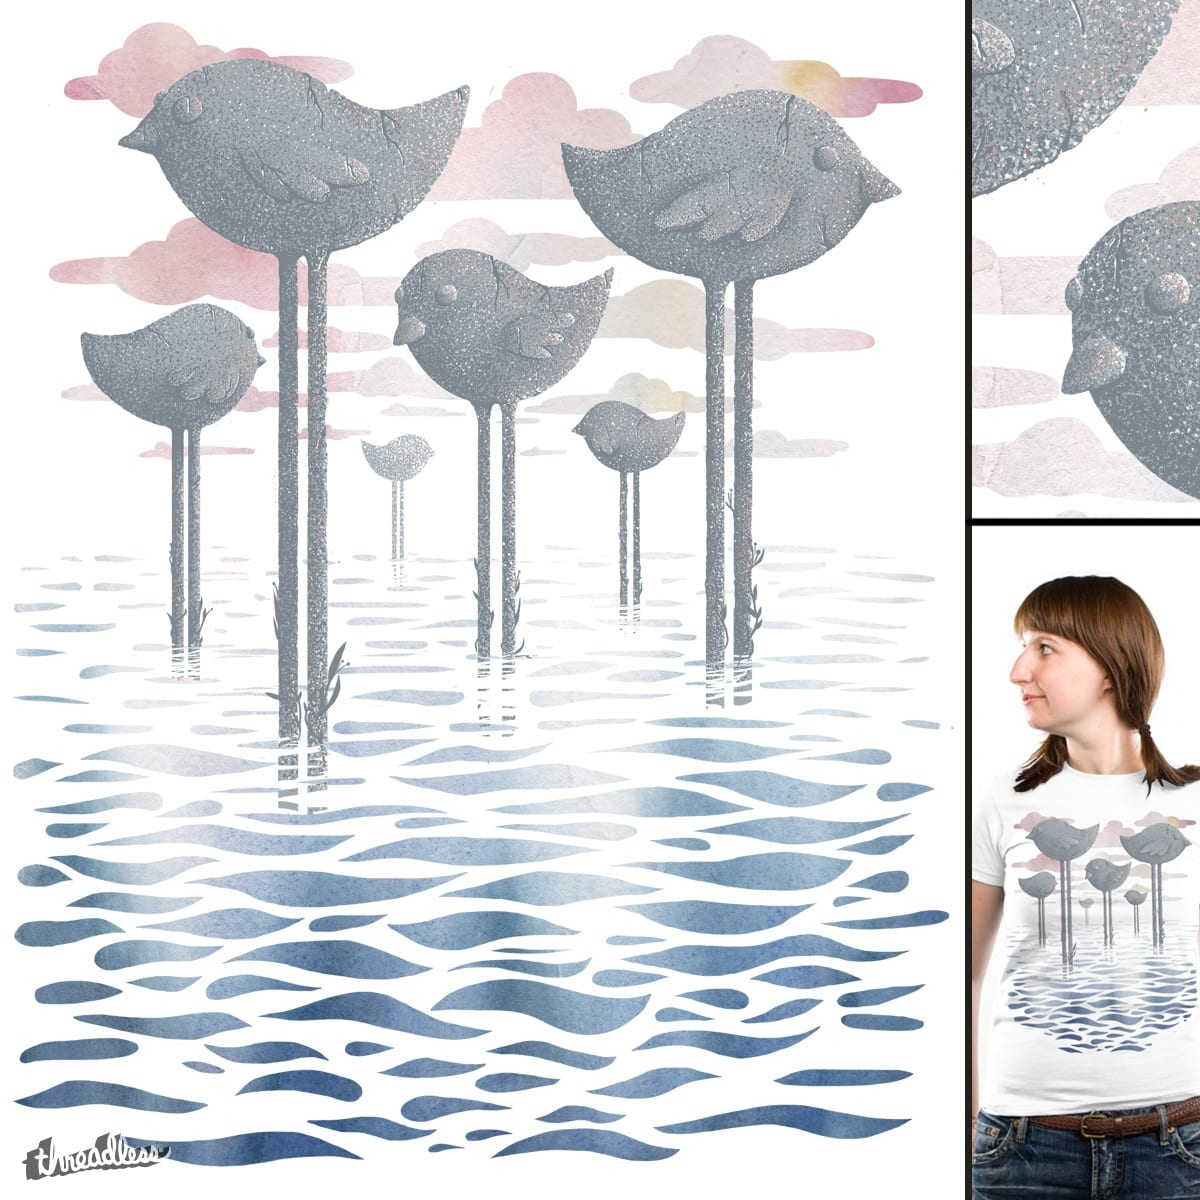 The Remnants by littleclyde on Threadless